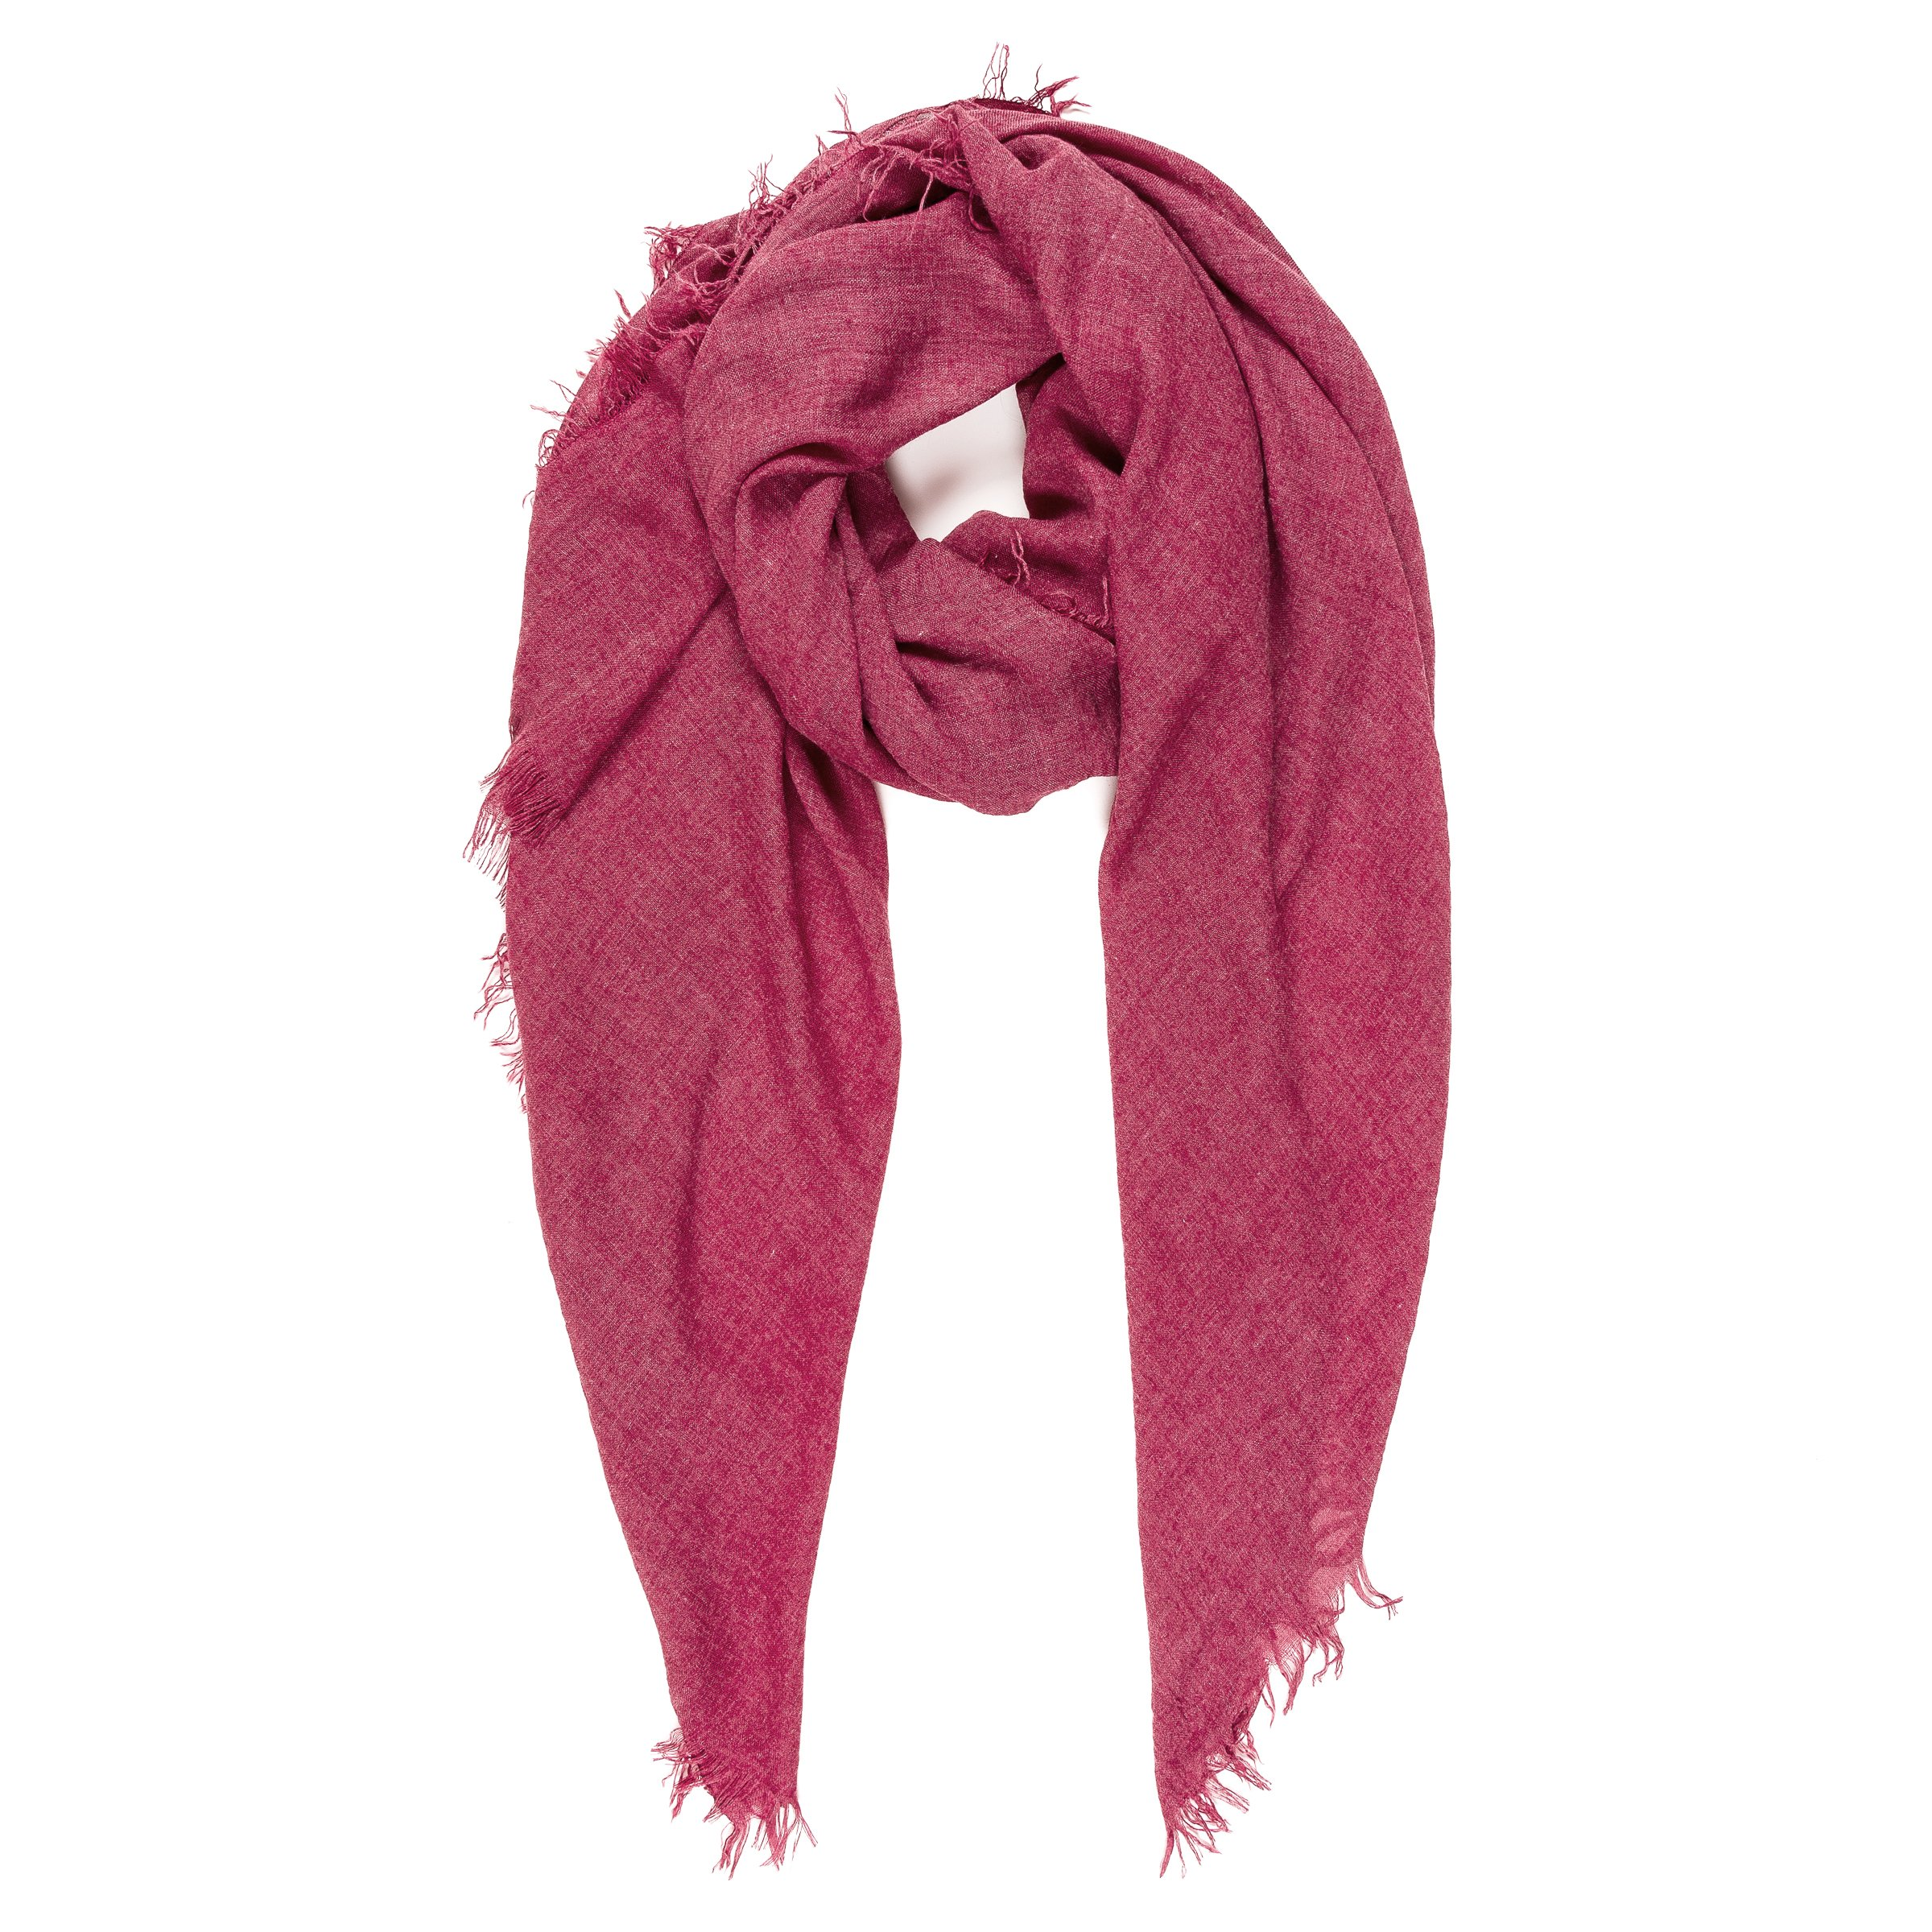 Scarves for Women: Lightweight Elegant Solid colors Fashion Scarf by MIMOSITO (Maroon Red)